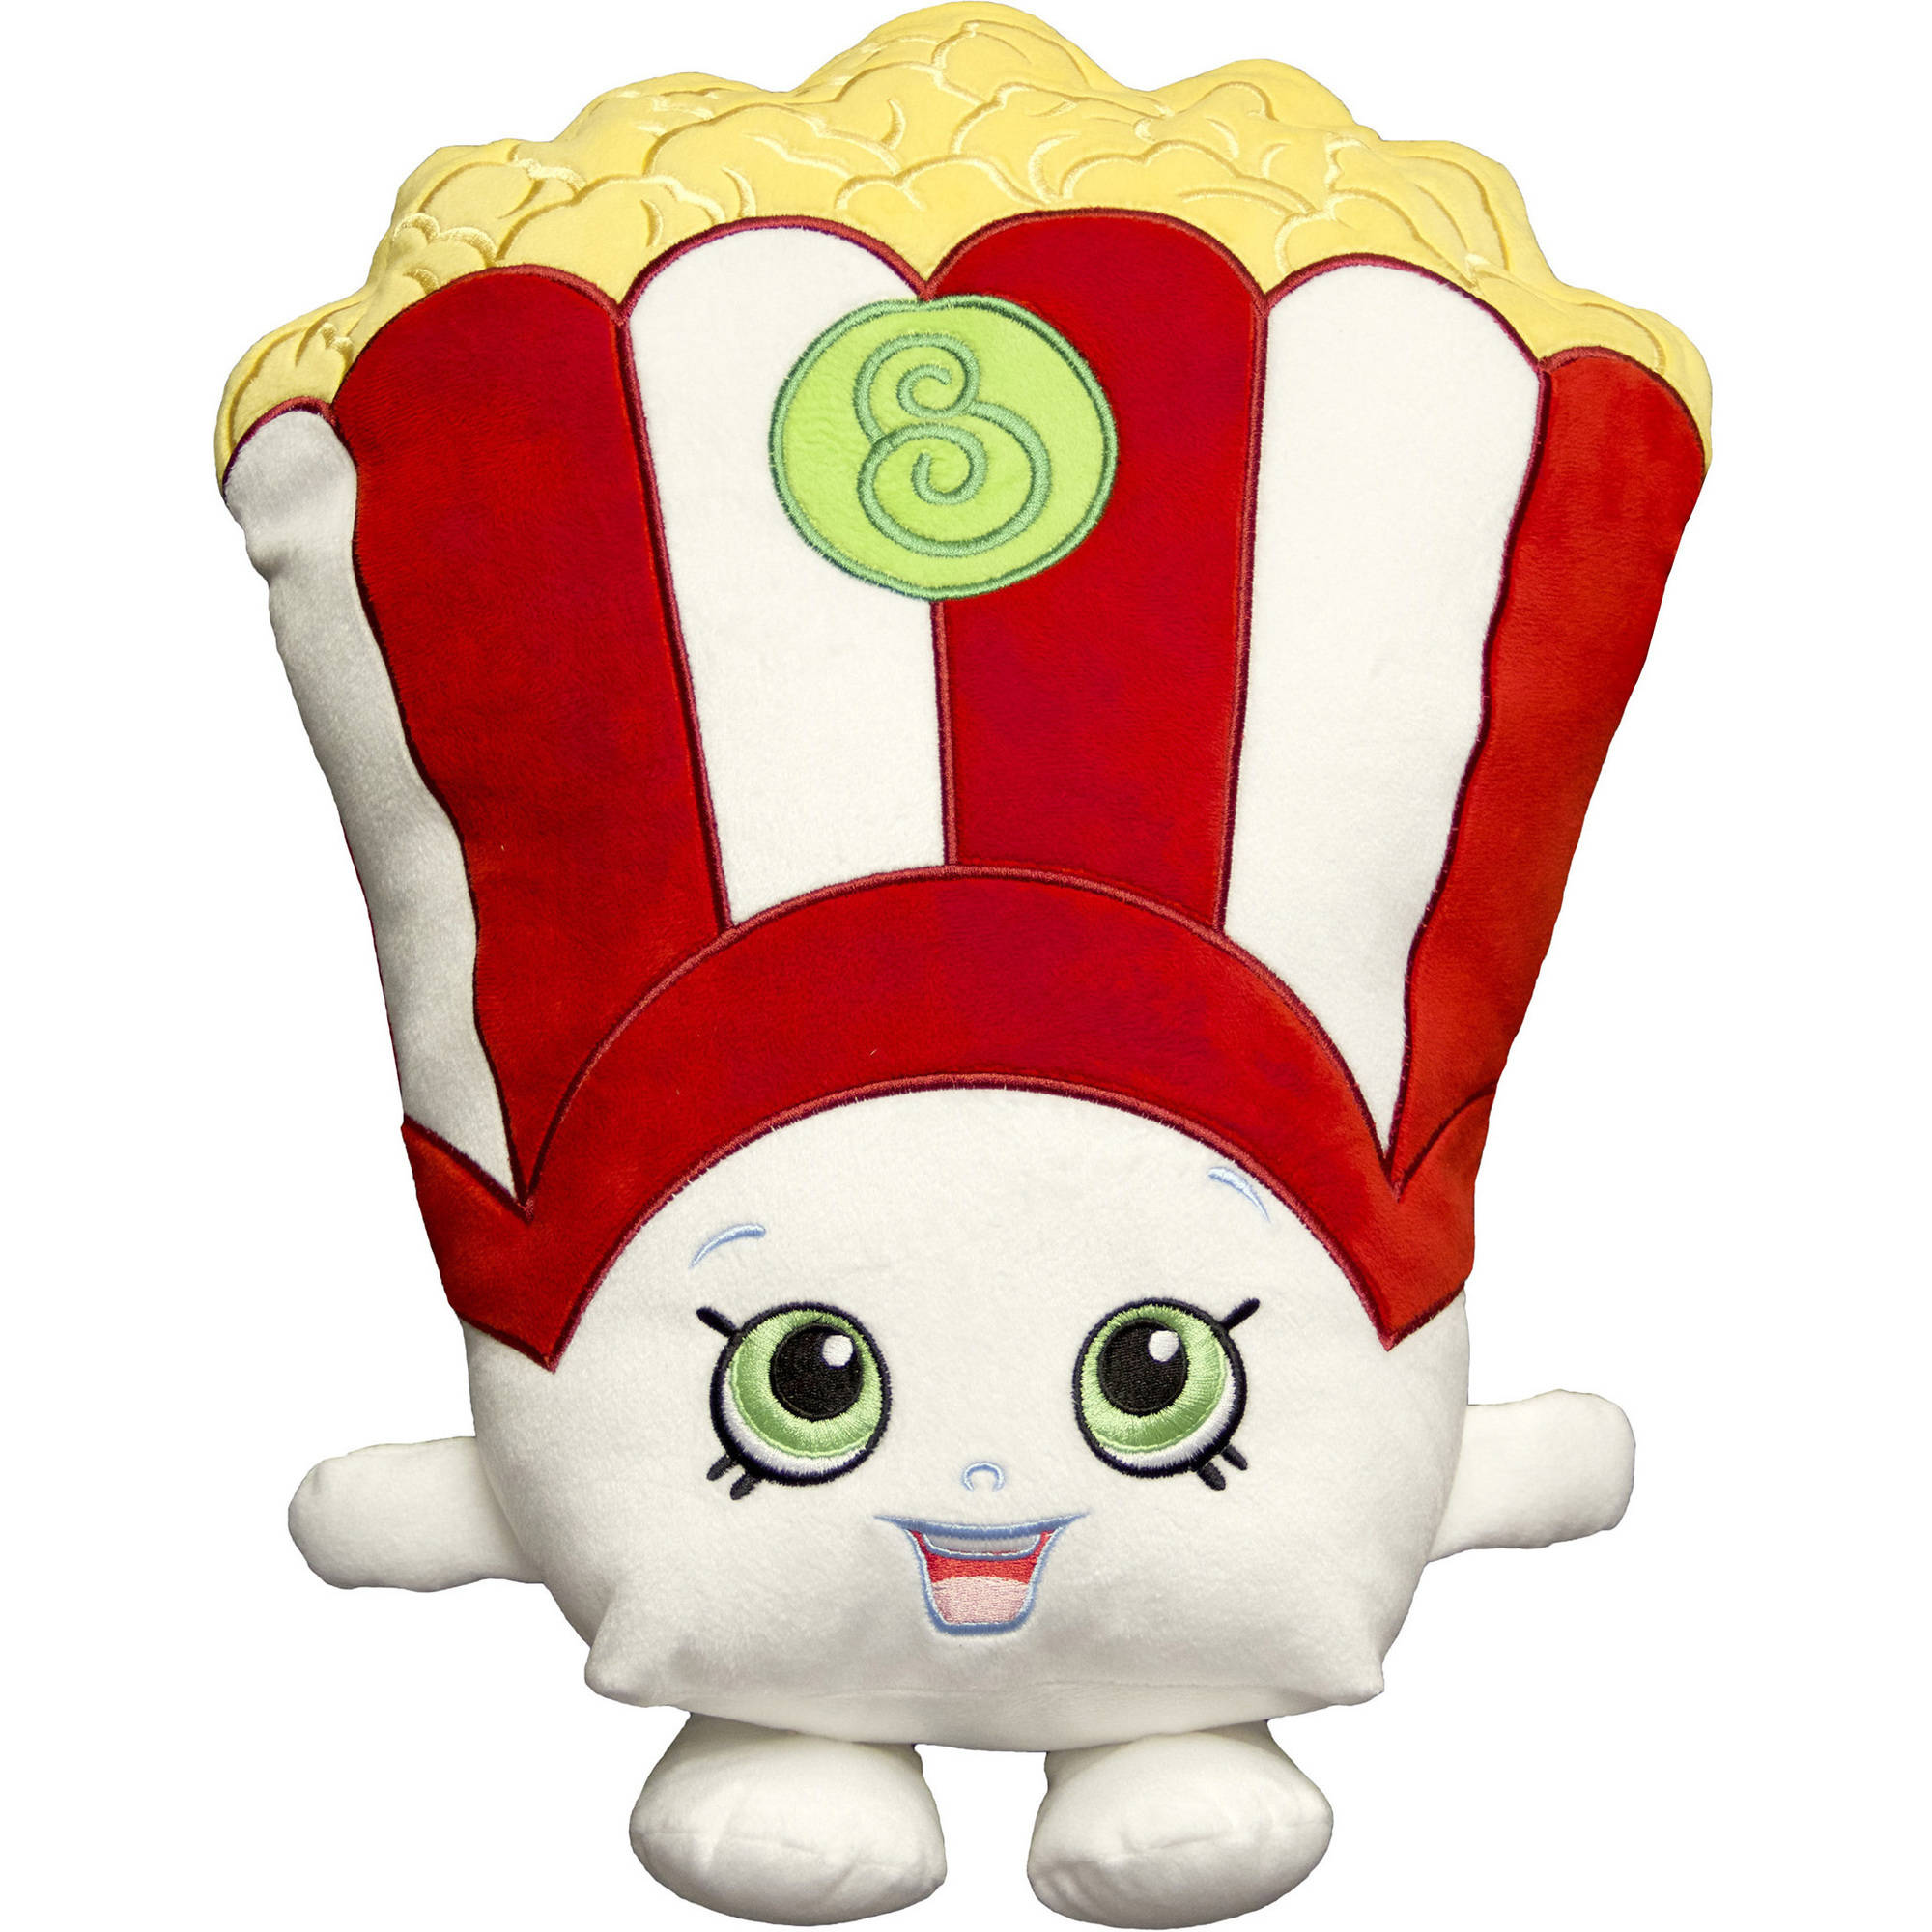 "Shopkins Poppy Corn Pillowbuddy, Polyester, 16"" x 12"" Online Only"